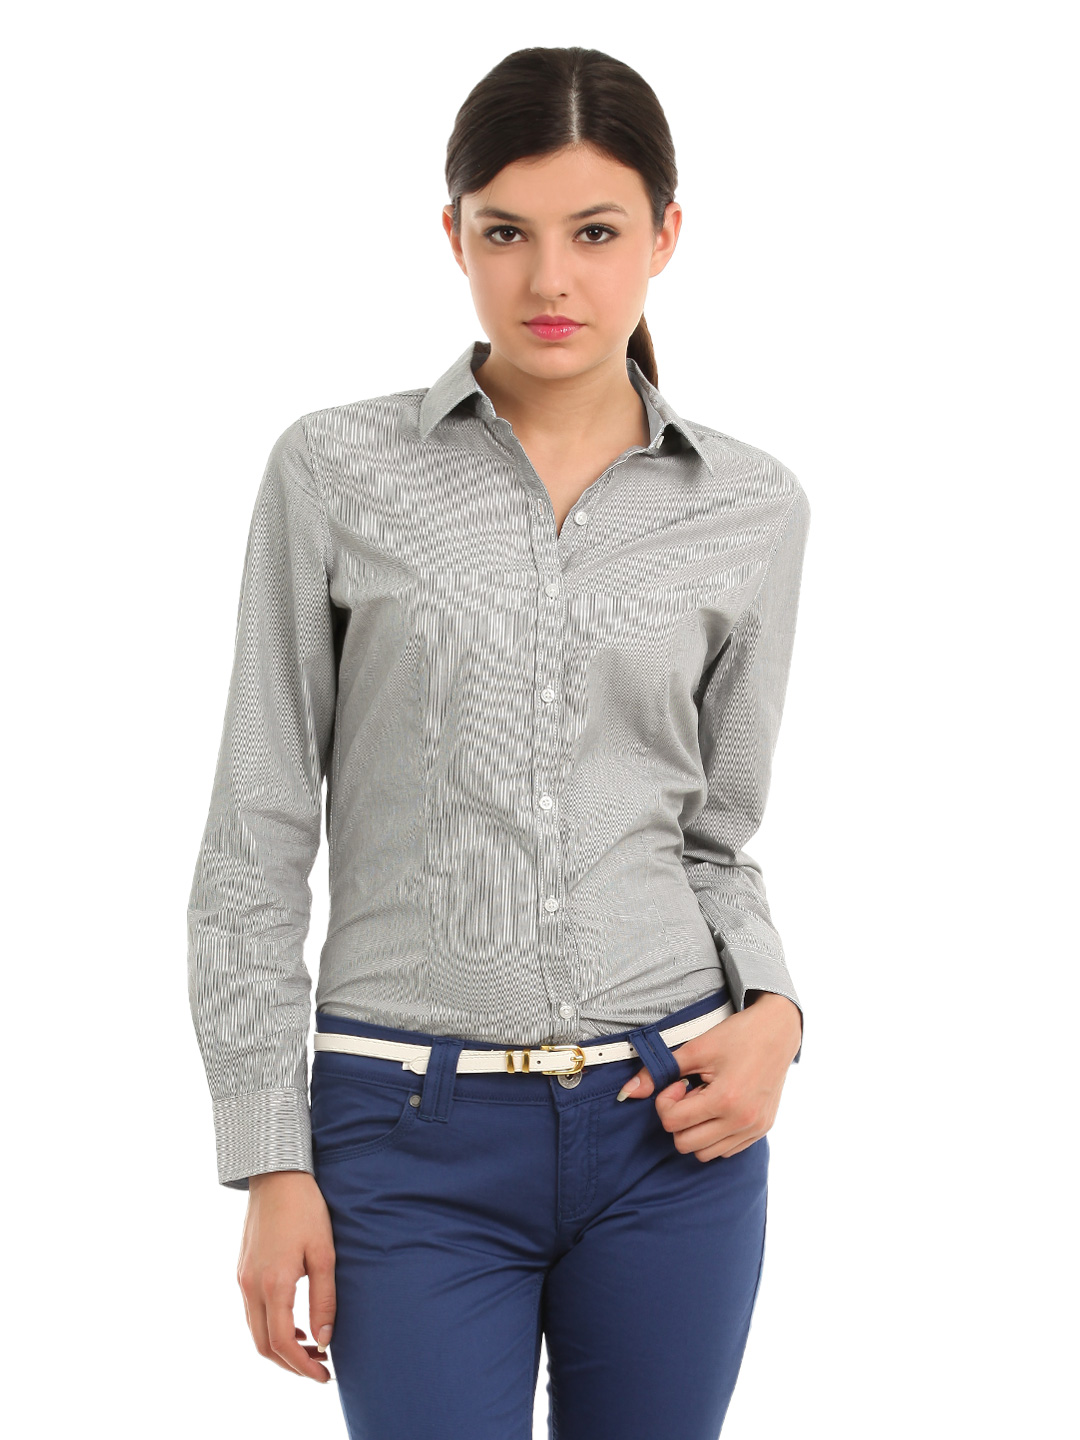 Allen Solly Woman Grey Shirt